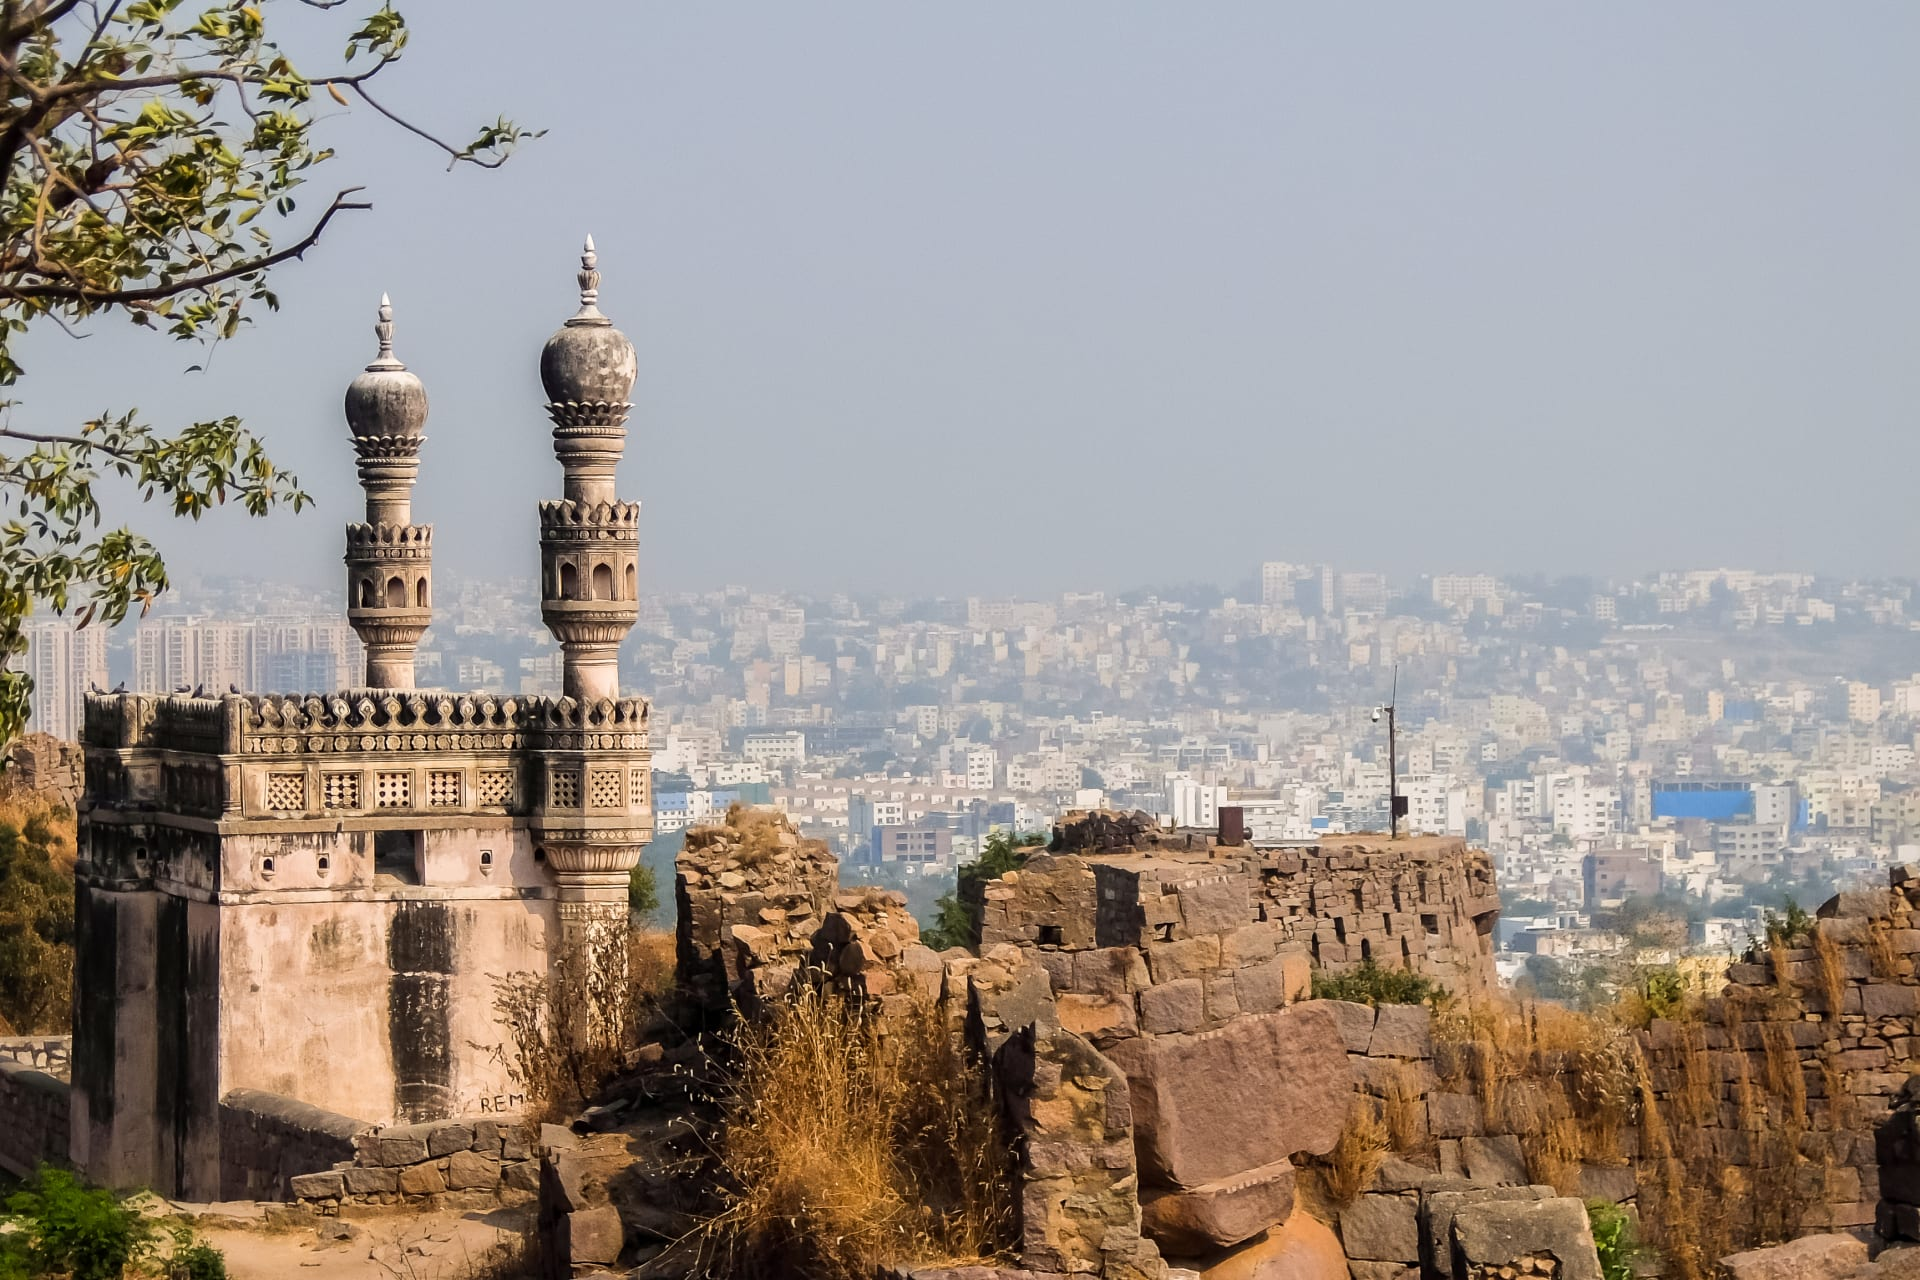 Hyderabad cover image